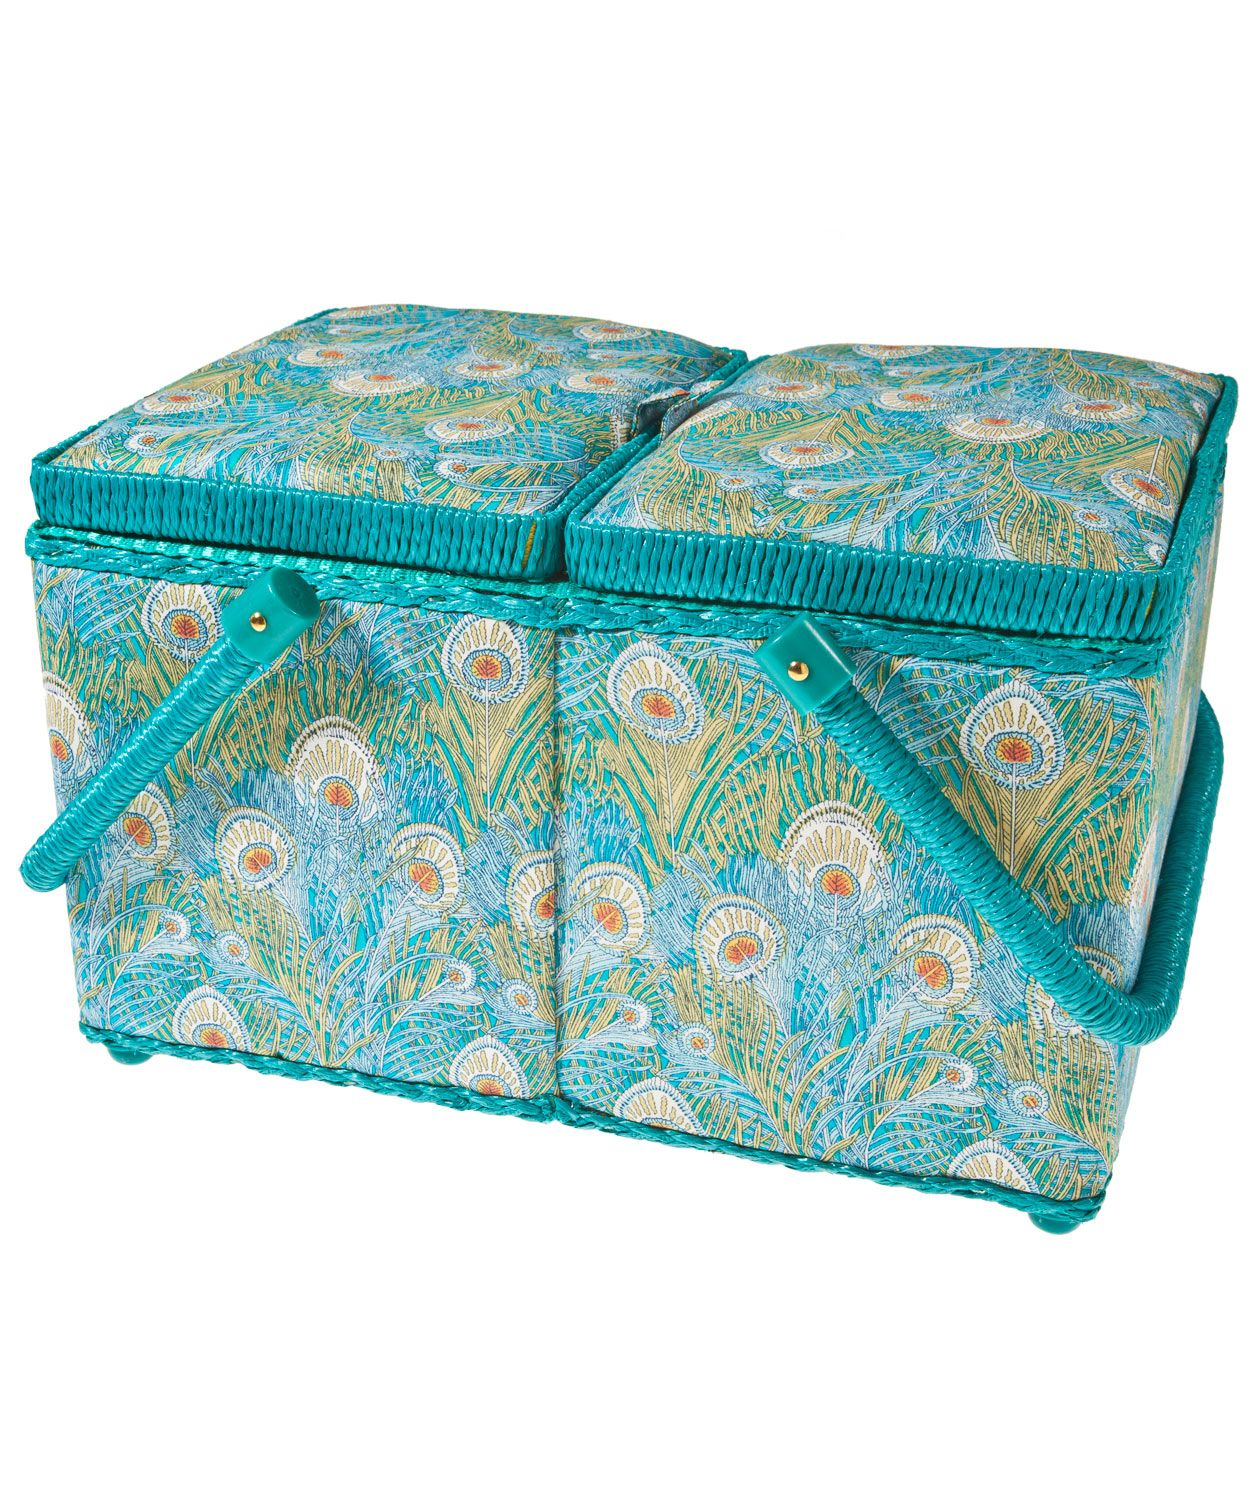 Hera Print Sewing Box, Liberty Print. Elegant sewing box made from Hera Liberty print. Featuring twin lids, two carry handles, removable tray to store smaller items, turquoise trim and handles, a pin cushion and two pockets inside the lid for extra storage.